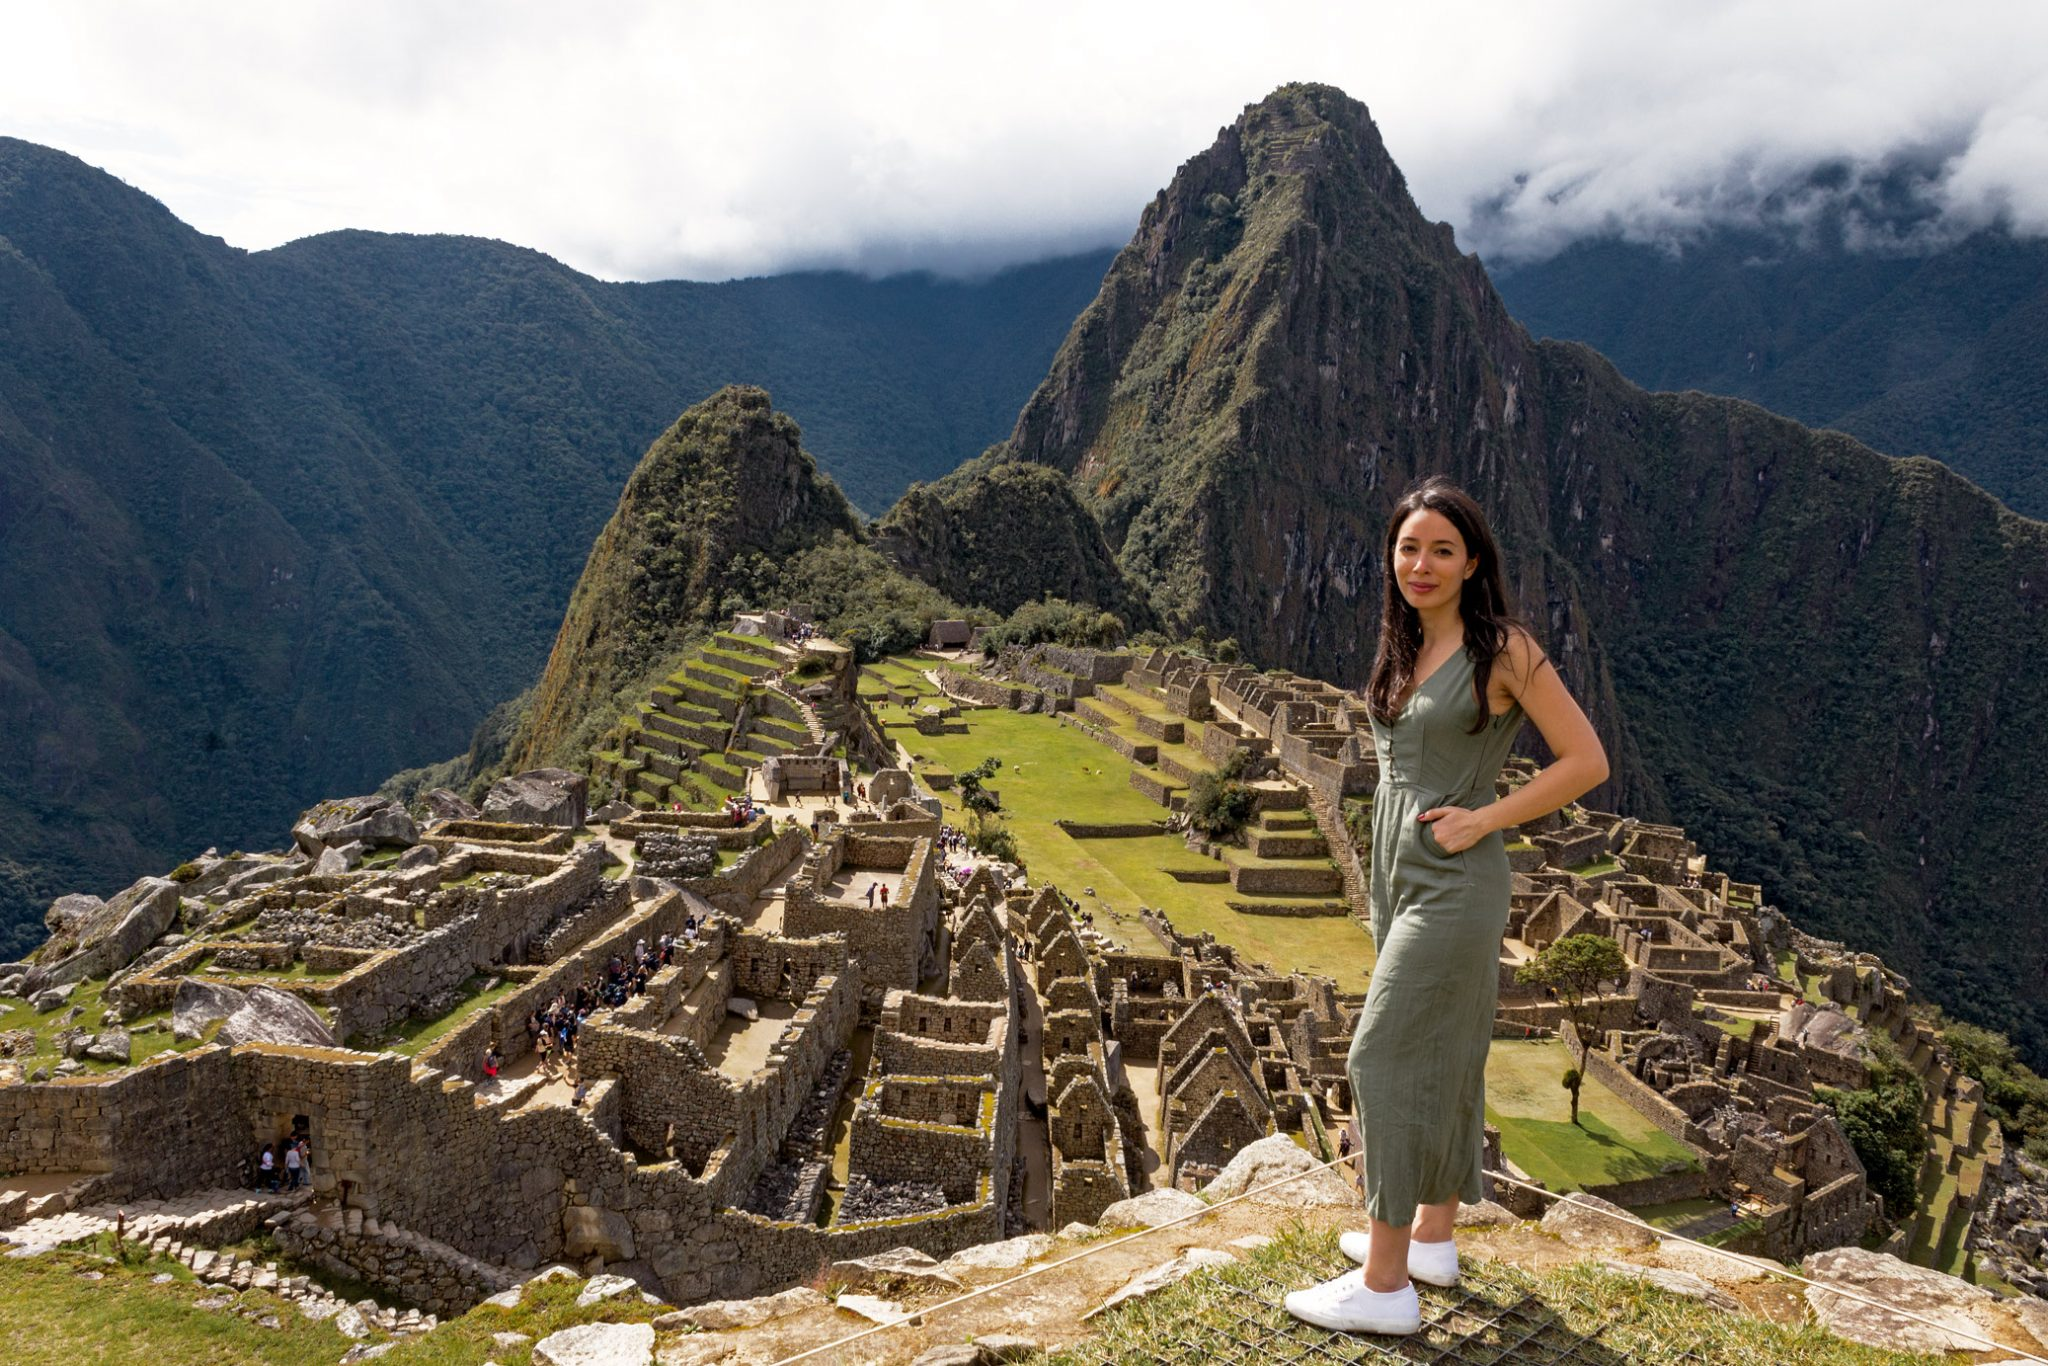 visit machu picchu outfit girl instagram